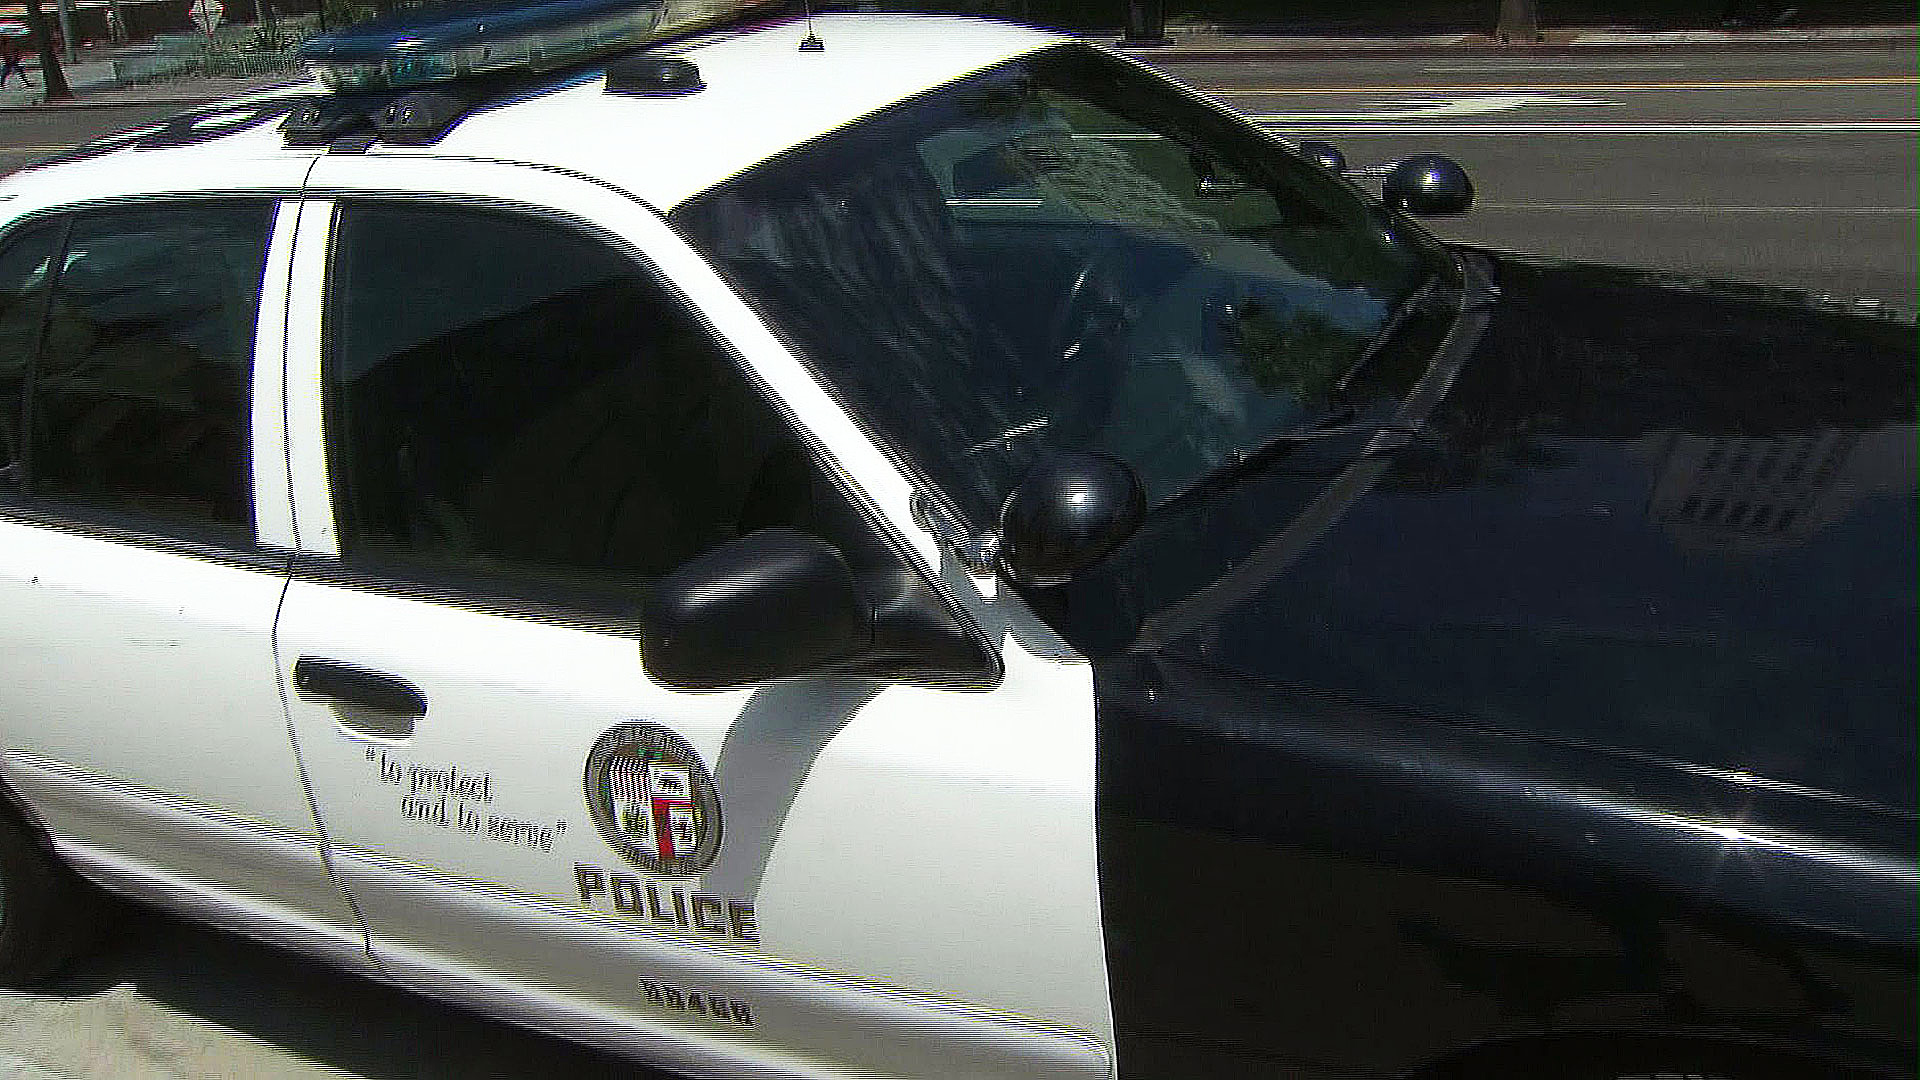 An LAPD patrol car is seen in this file photo. (Credit: KTLA)